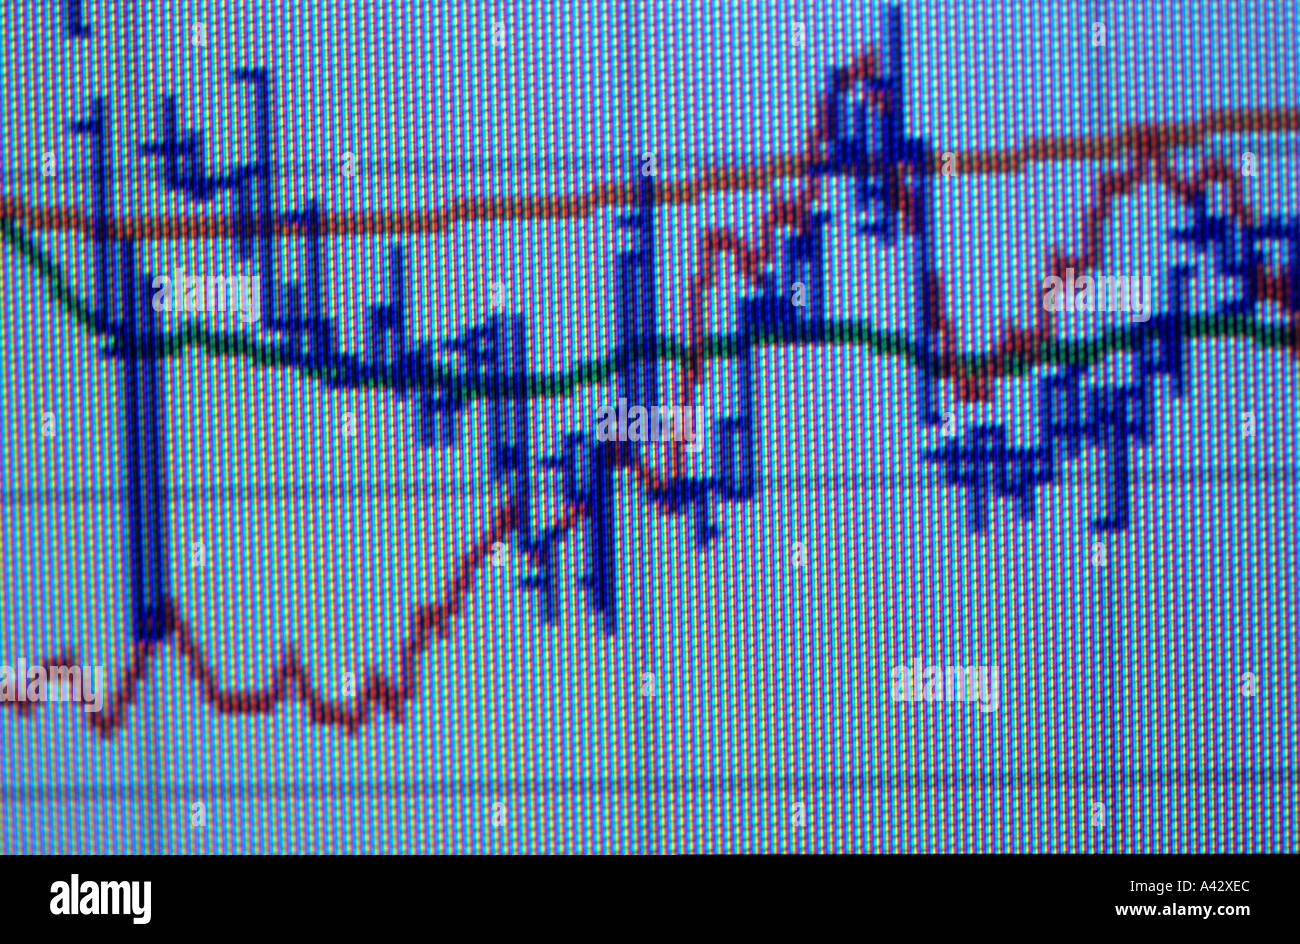 stock exchange curves - Stock Image